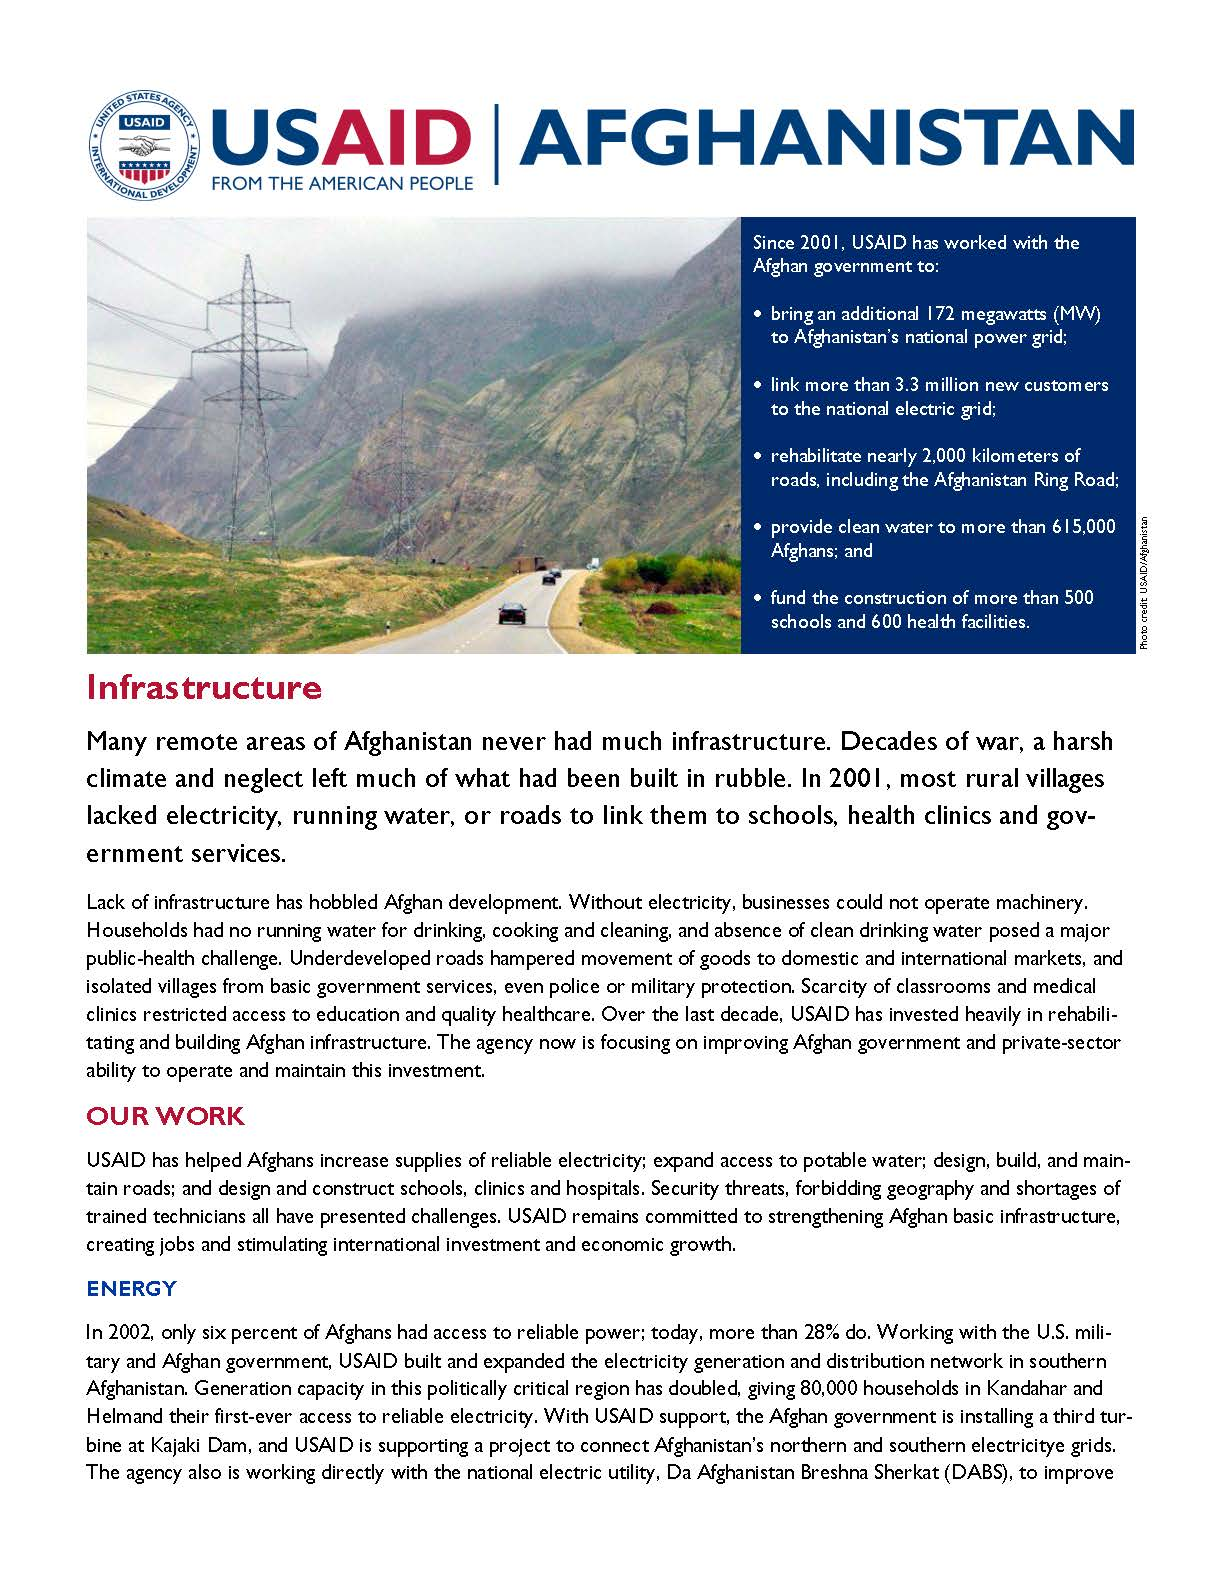 Infrastructure Fact Sheet - Aug 2014